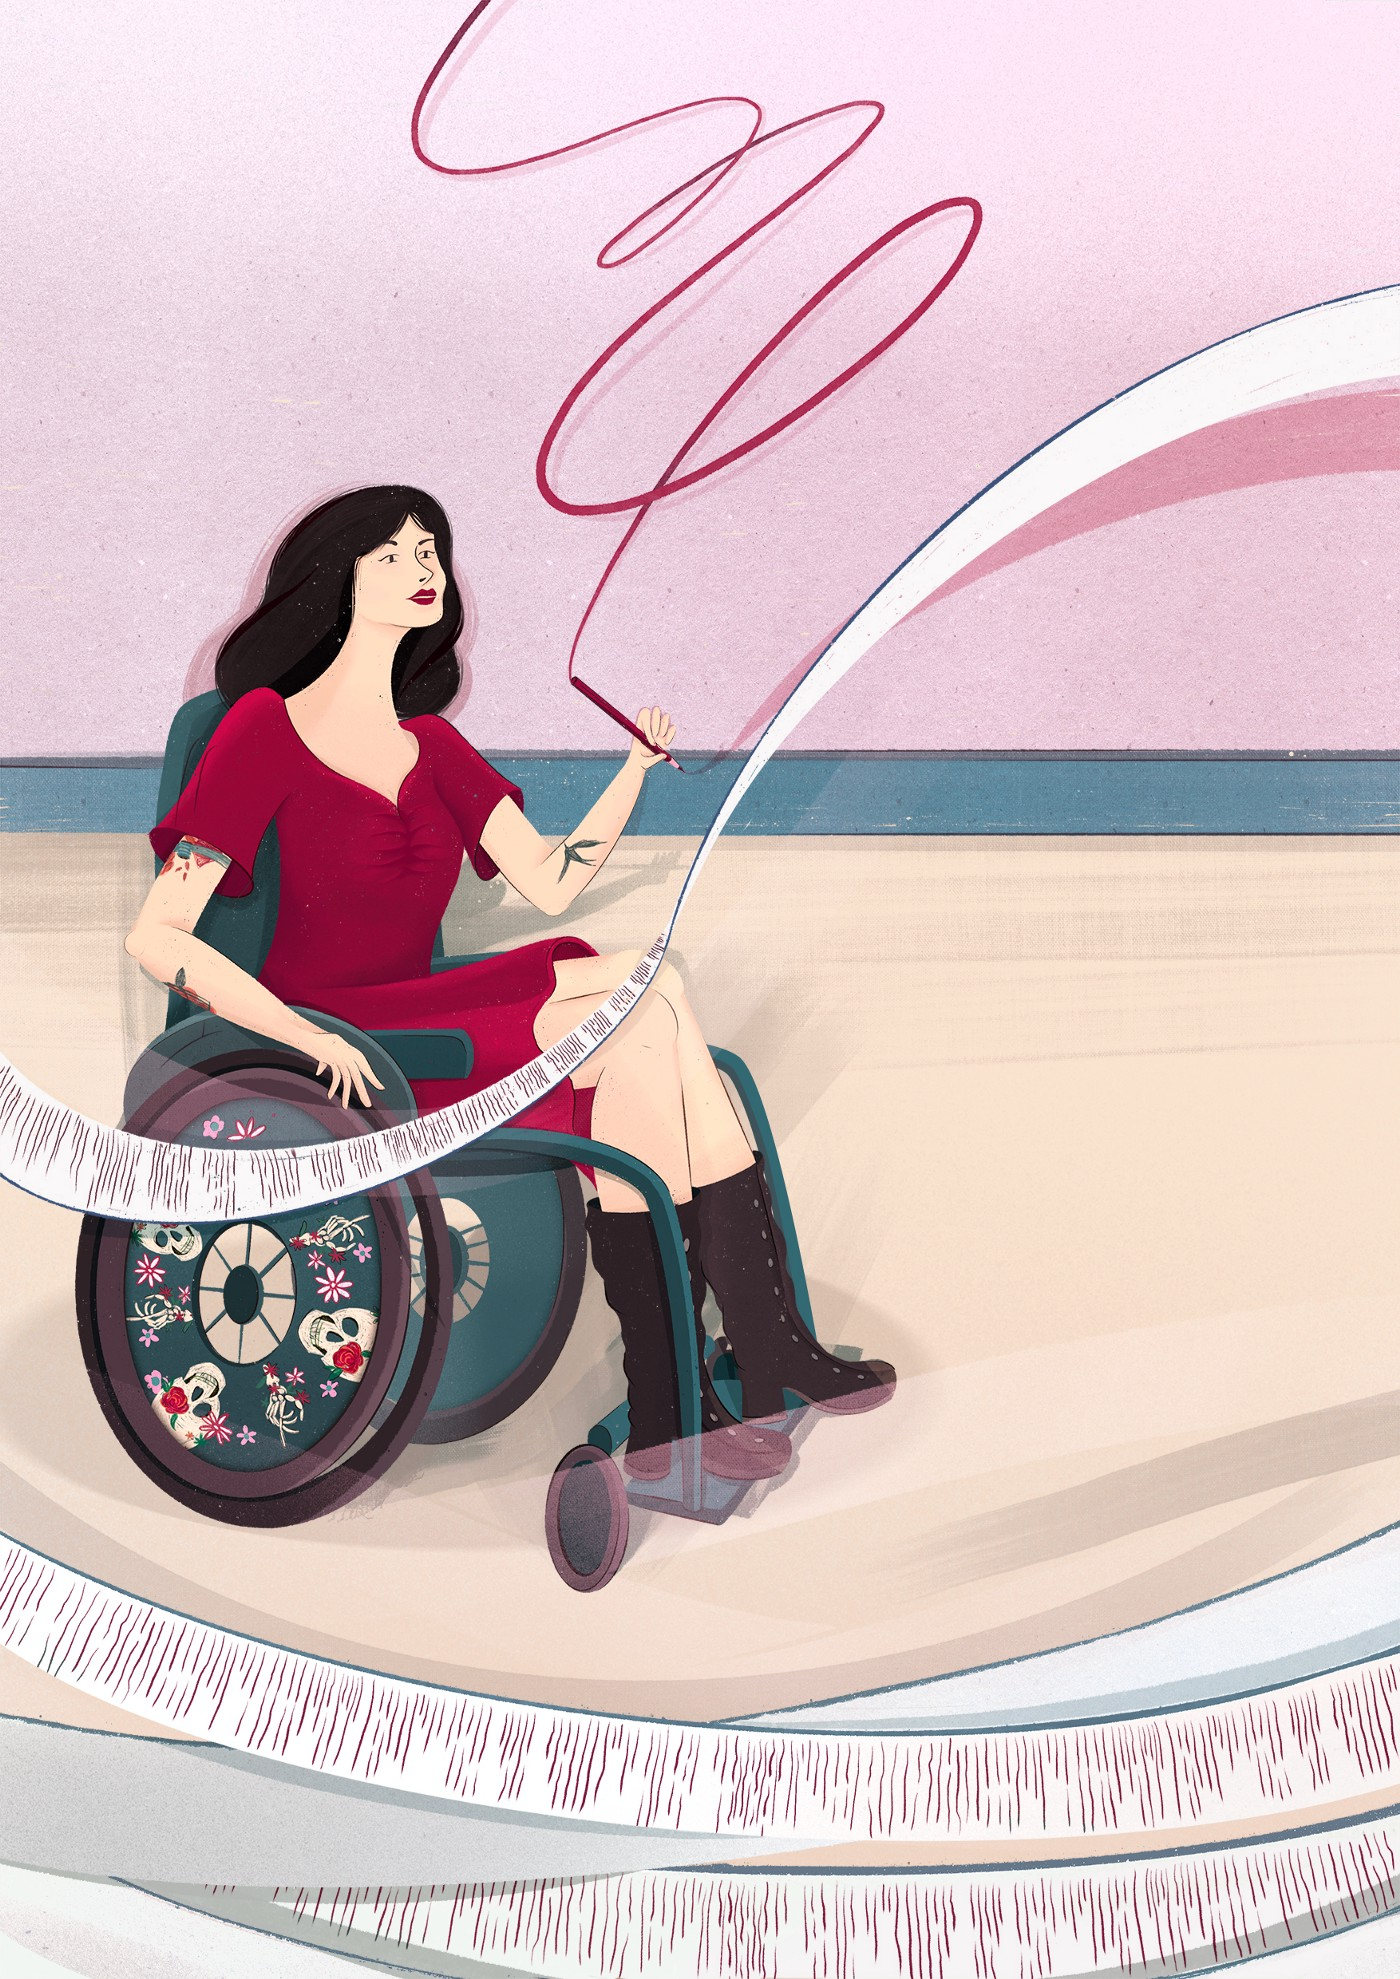 An illustration of Tara Moss. She is wearing a red dress and black boots. She sits in her wheelchair which has skulls and flowers on the wheel plates. She is writing on paper that is swirling around her.